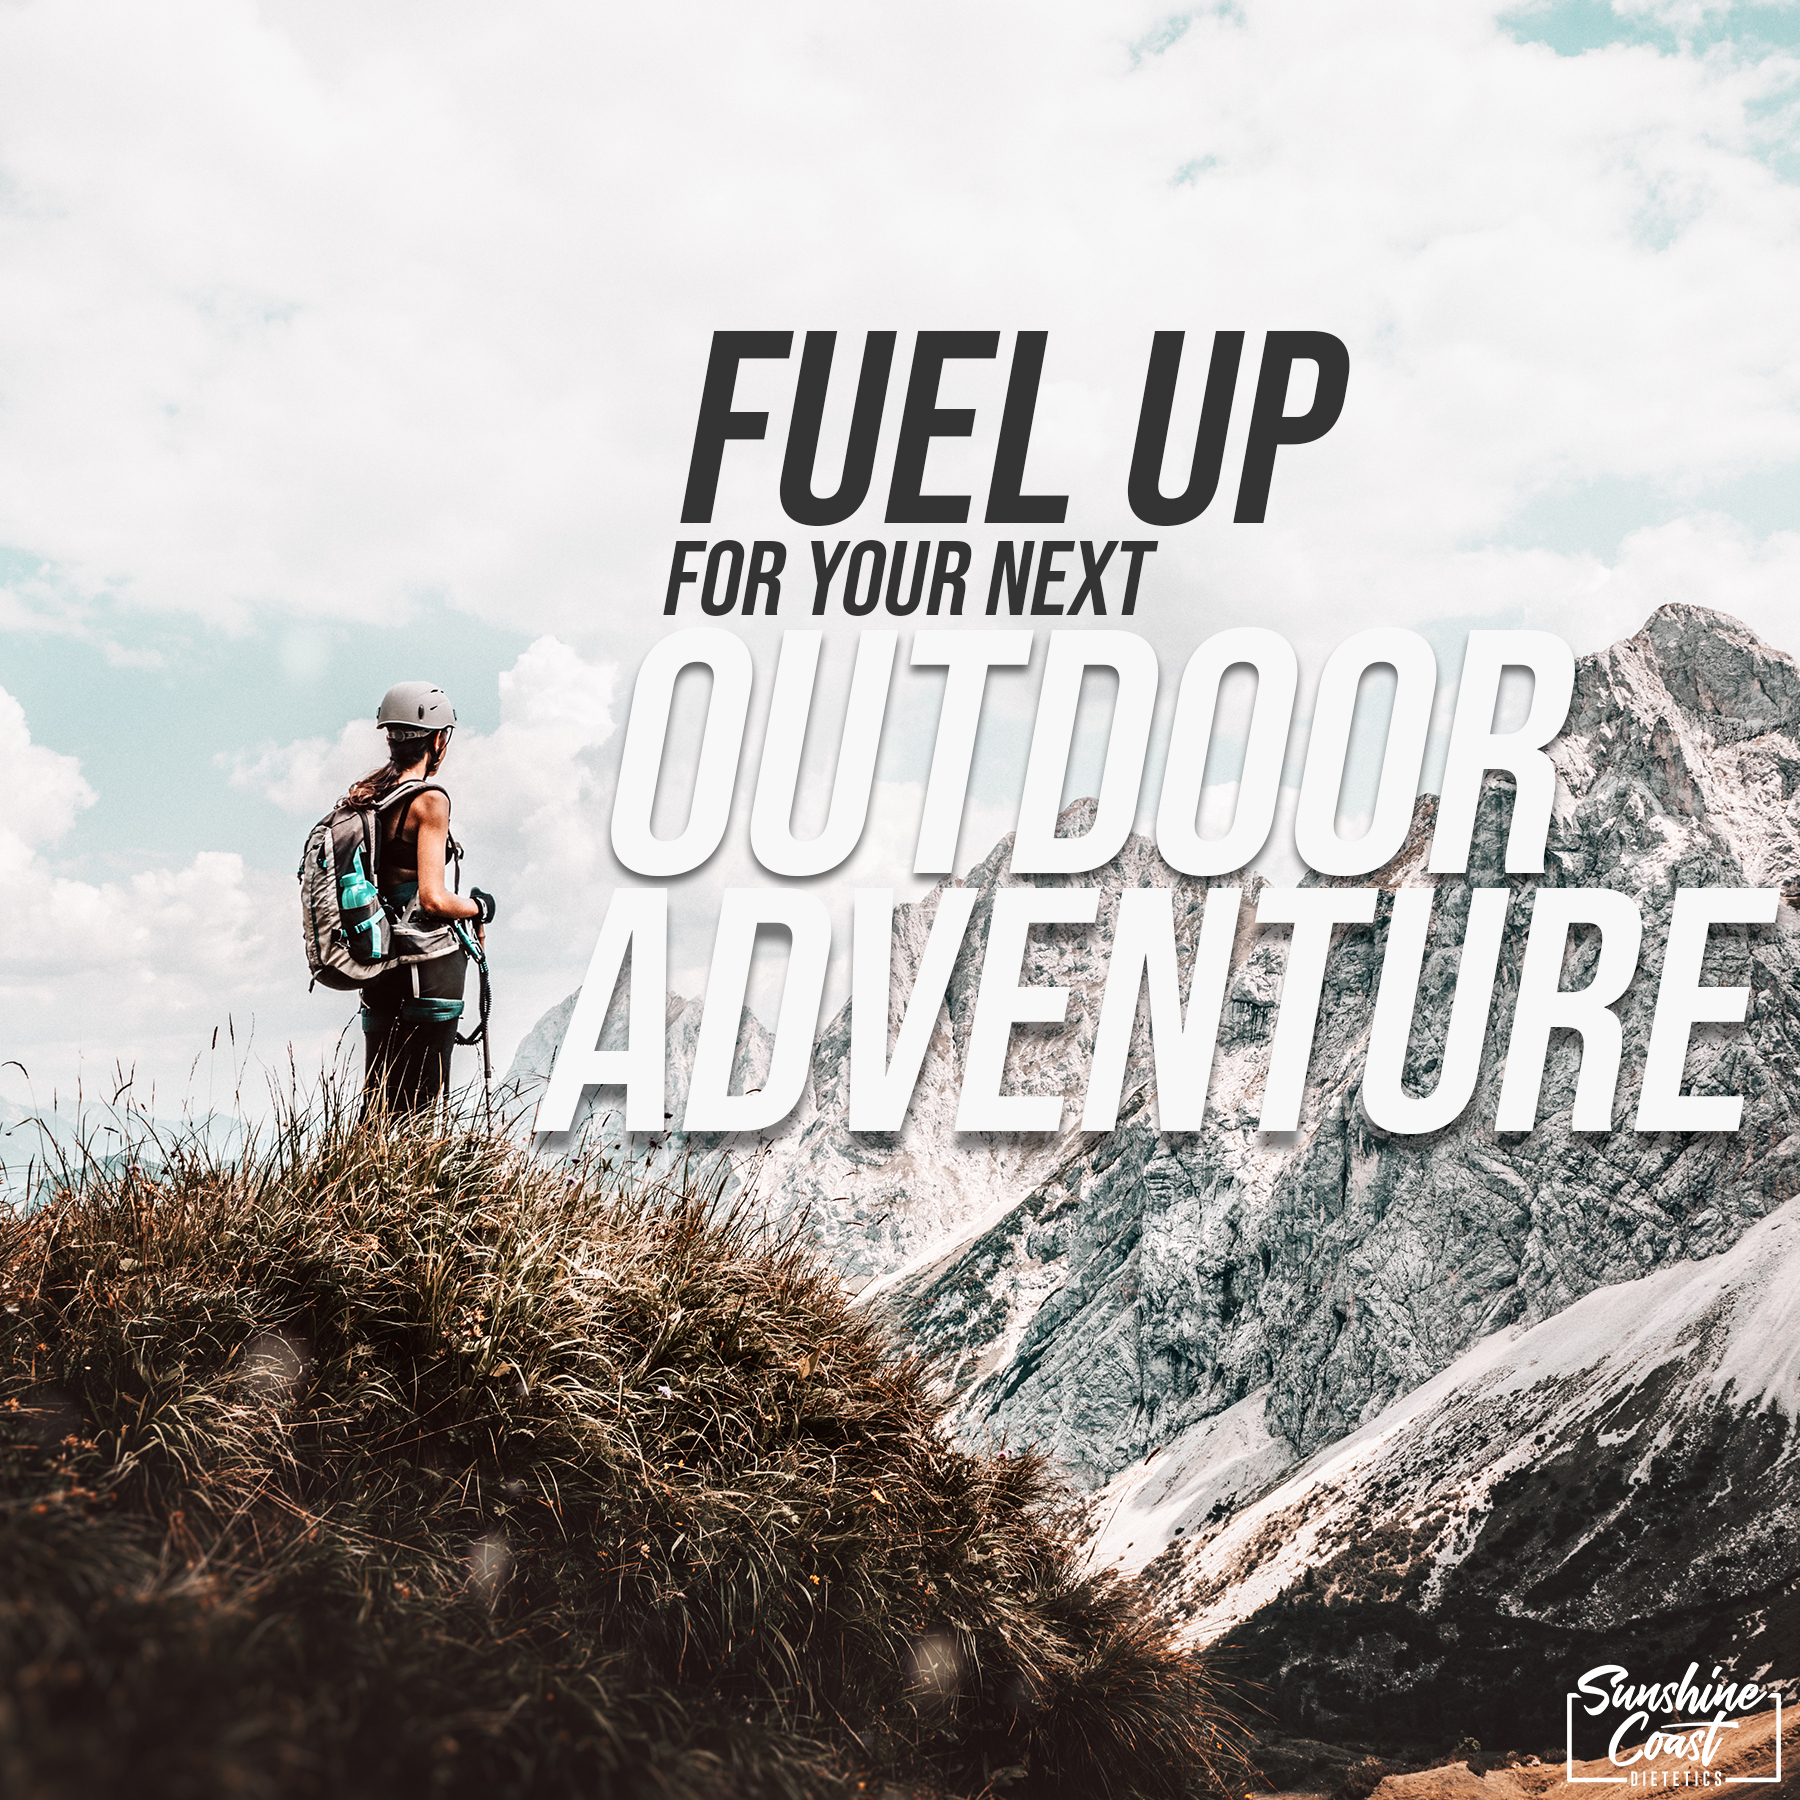 Fuel Up For Your Next Outdoor Adventure